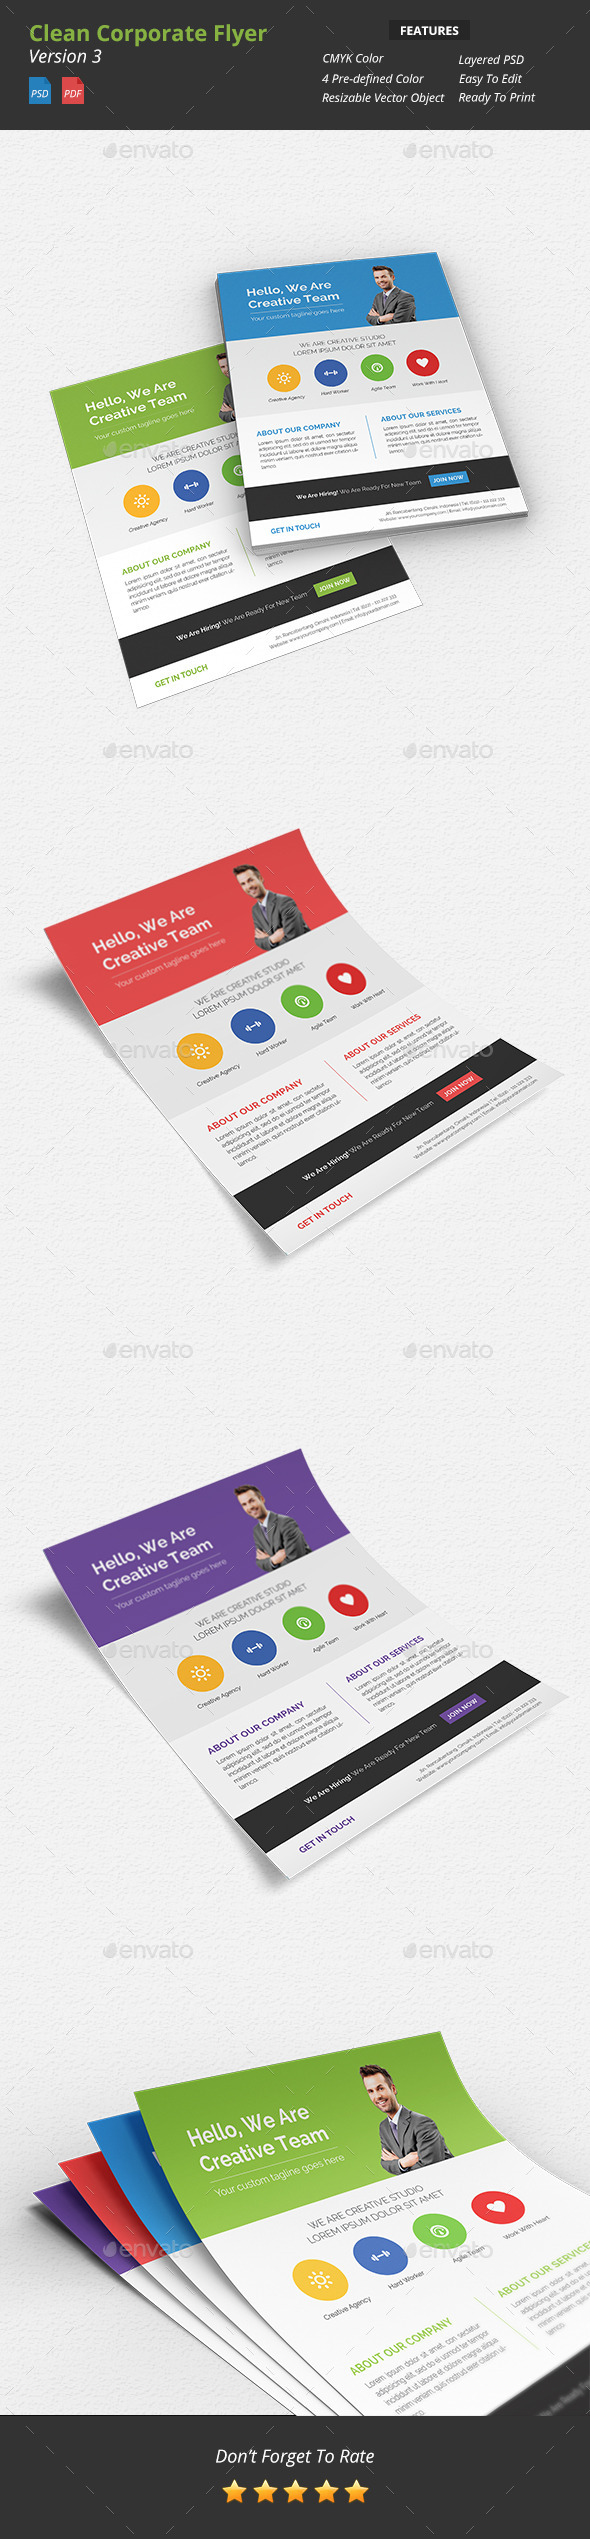 GraphicRiver Clean Corporate Flyer v3 9383185